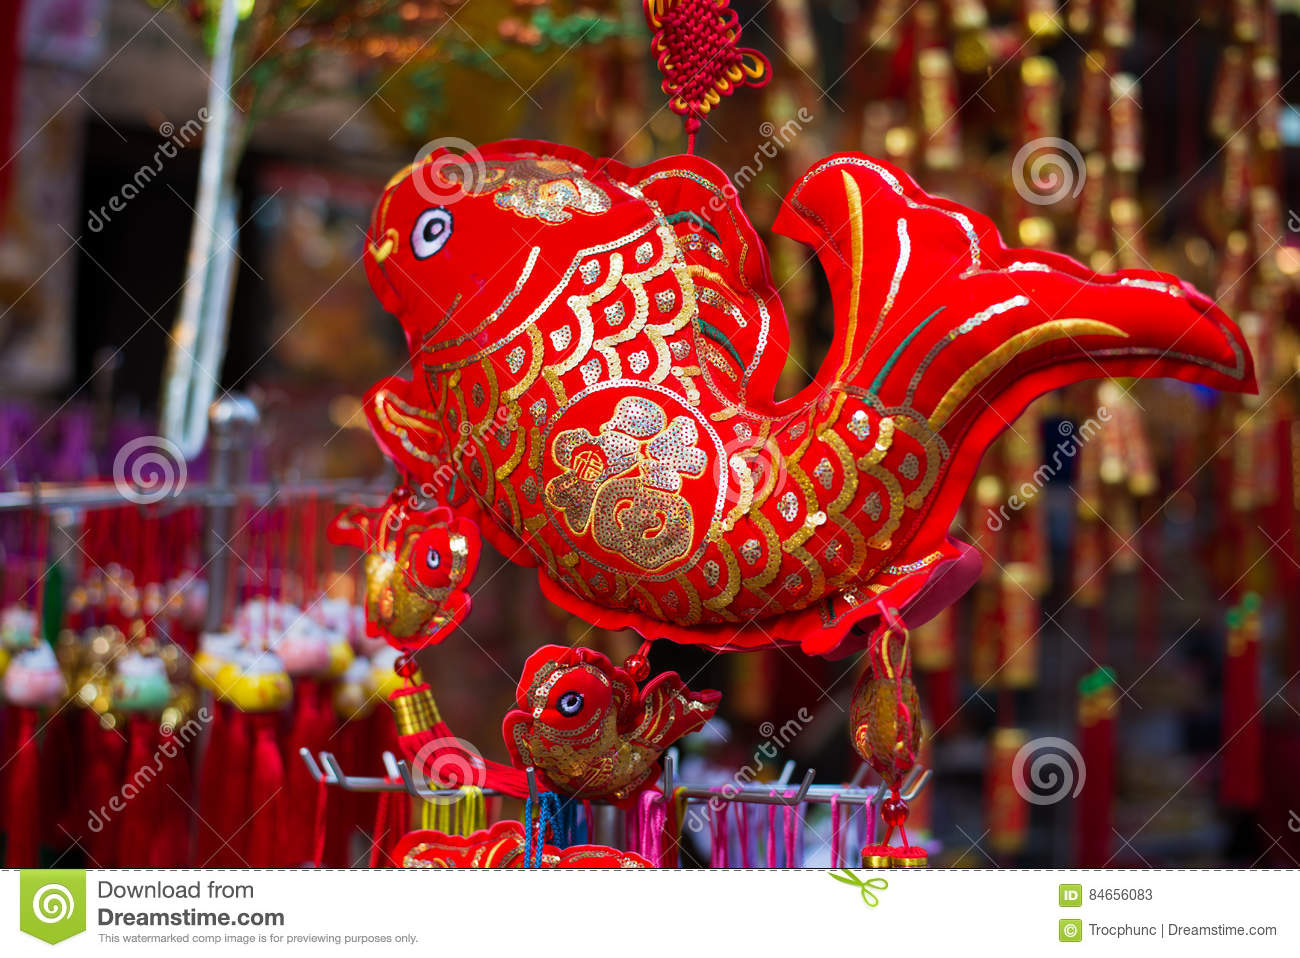 Lunar new year decorations stock image. Image of greeting ...